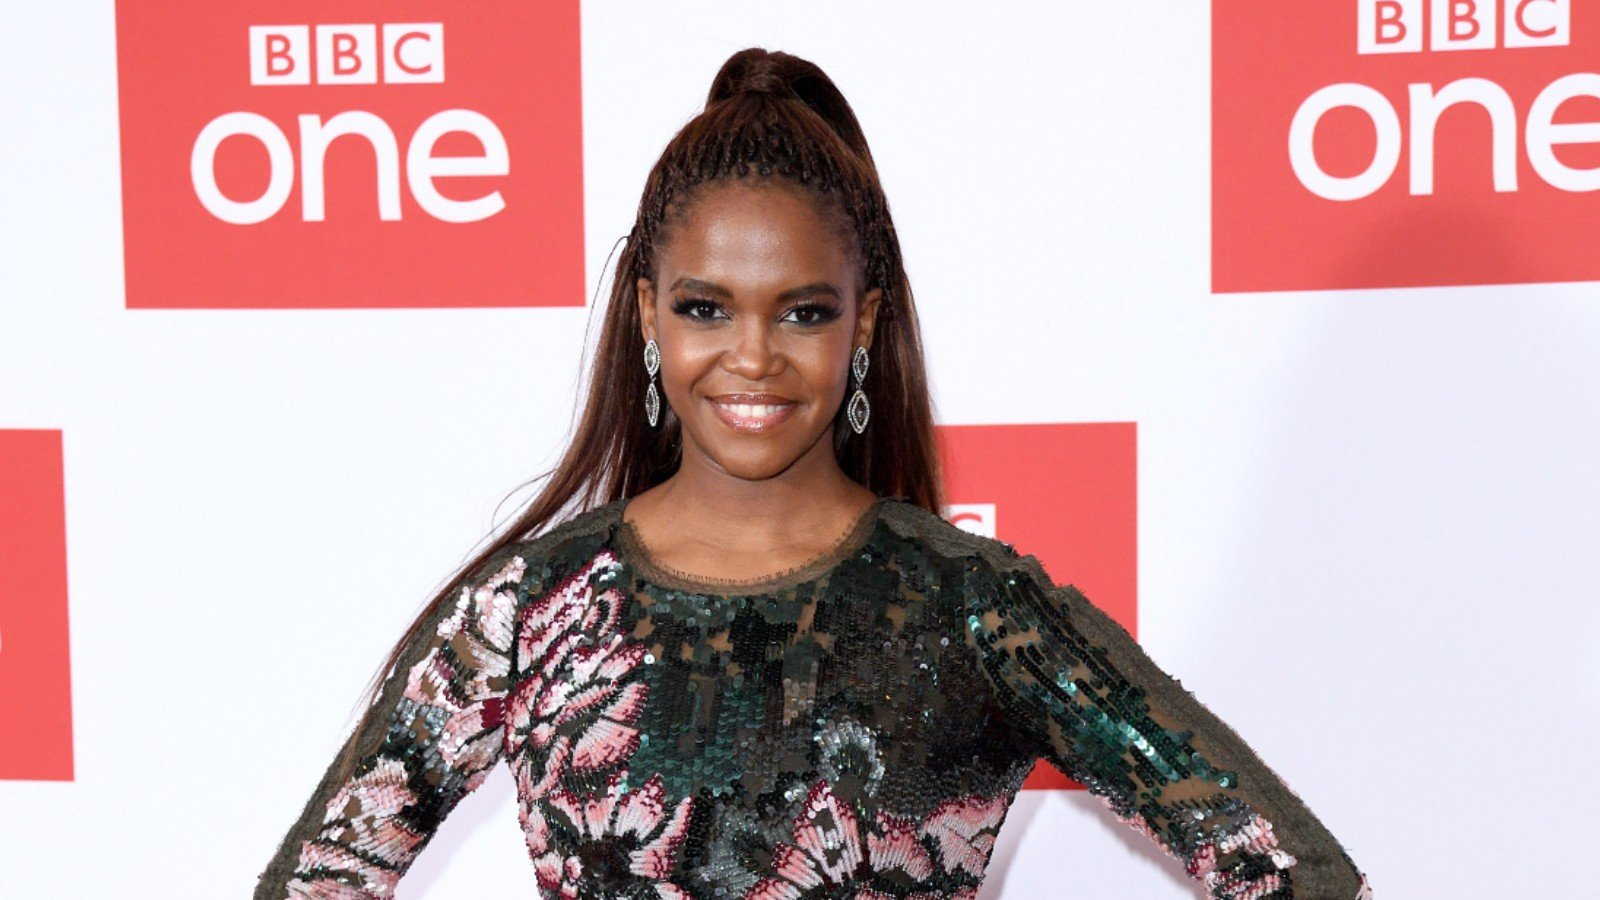 Strictly Come Dancing's Oti Mabuse confirms she's leaving show this year